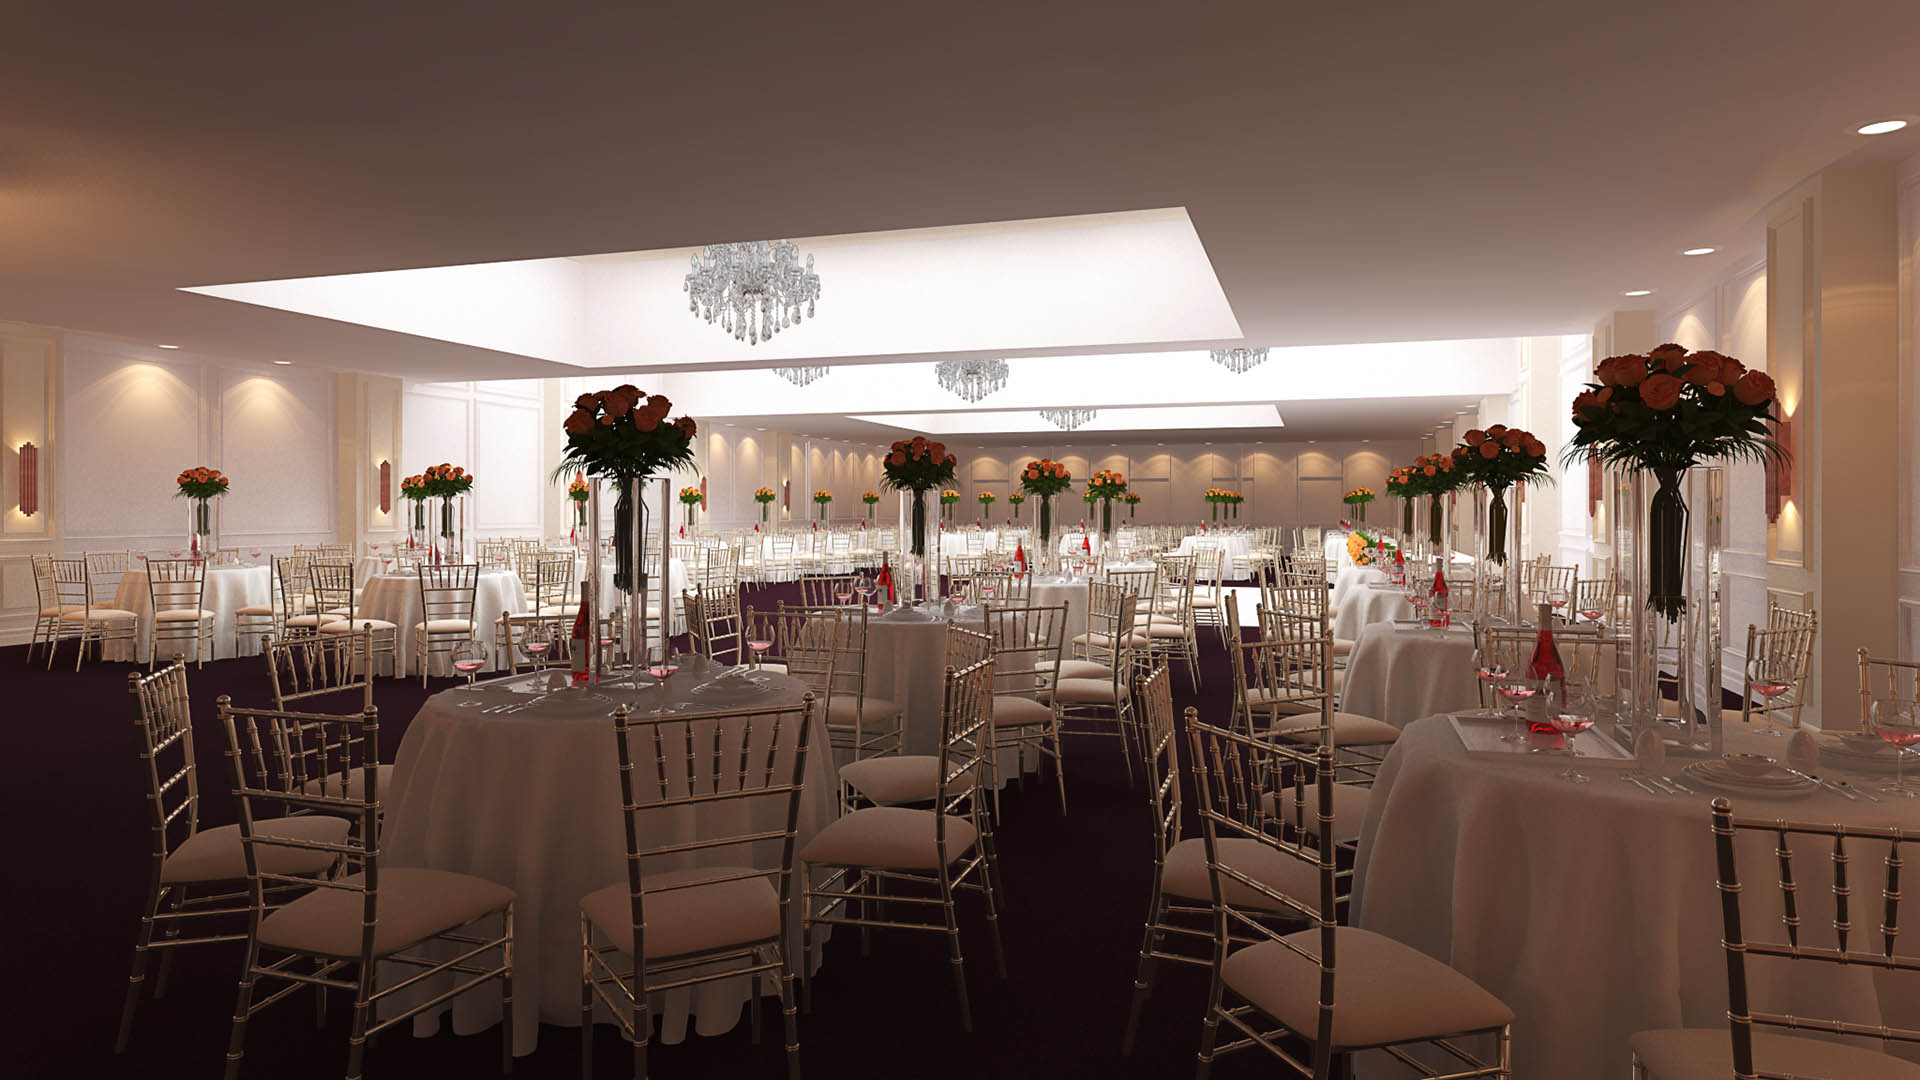 silver-pearl-wedding-venue-render-3.jpg